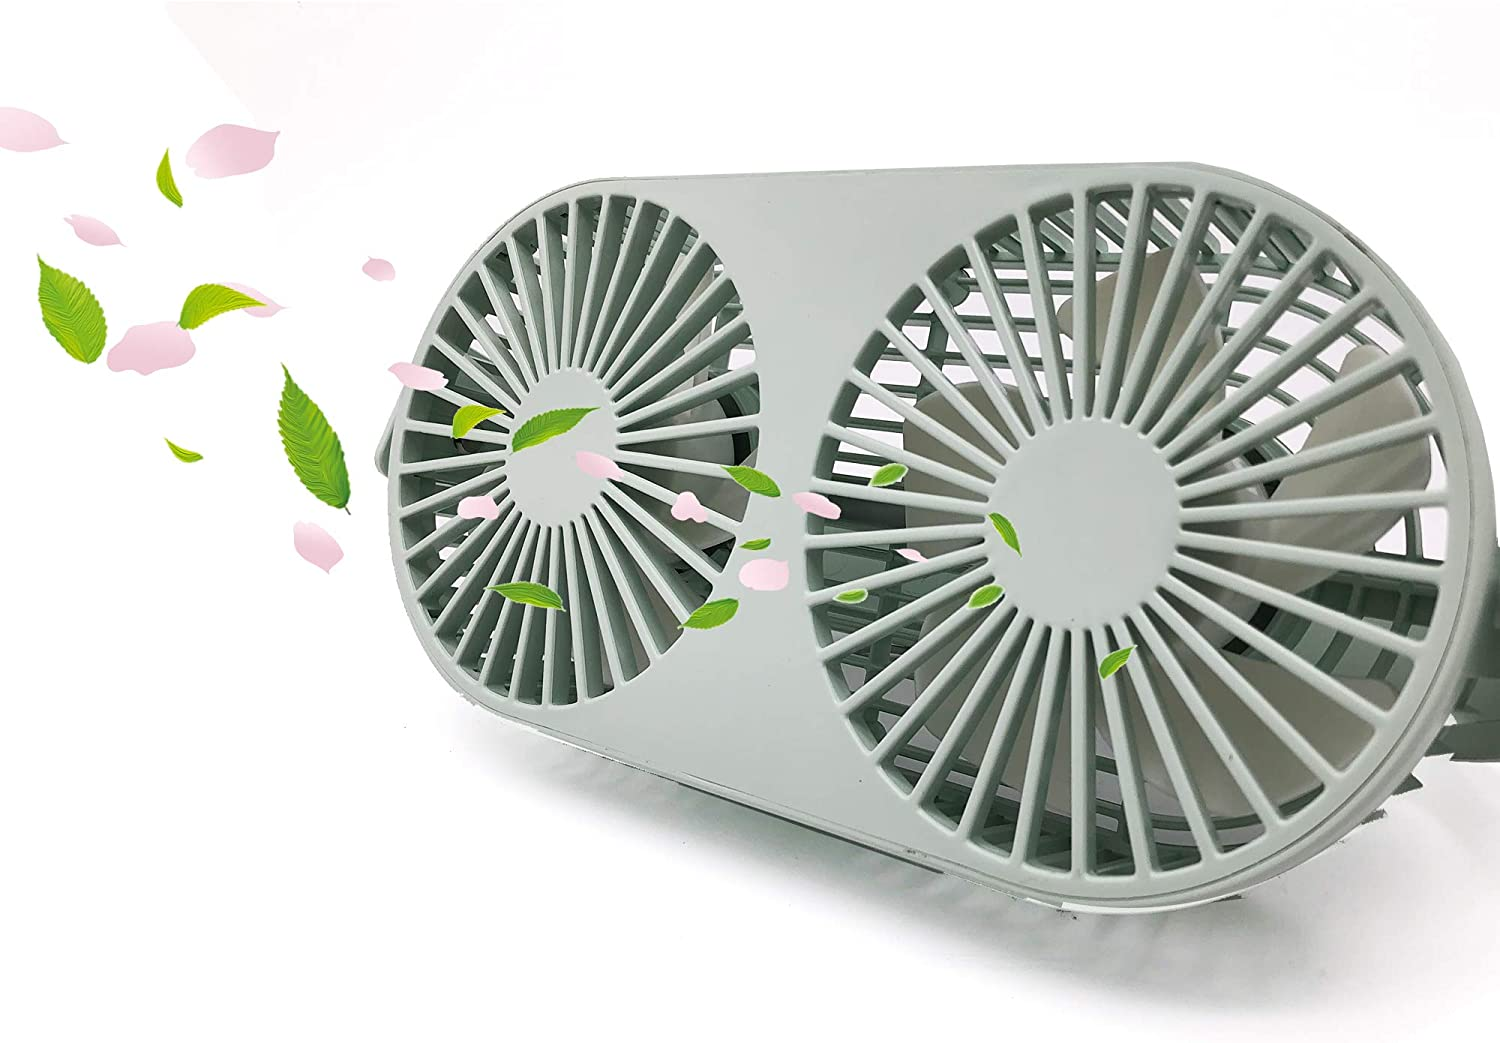 Exclusivo Bolsillo 4.6 Inch 360 Rotatable Personal Dual USB Fan, Quiet and Powerful Desk Table Fan with Aromatherapy Box, Twin Turbo Blades, 3 Speeds, Portable Mini Fan for Home Office Green